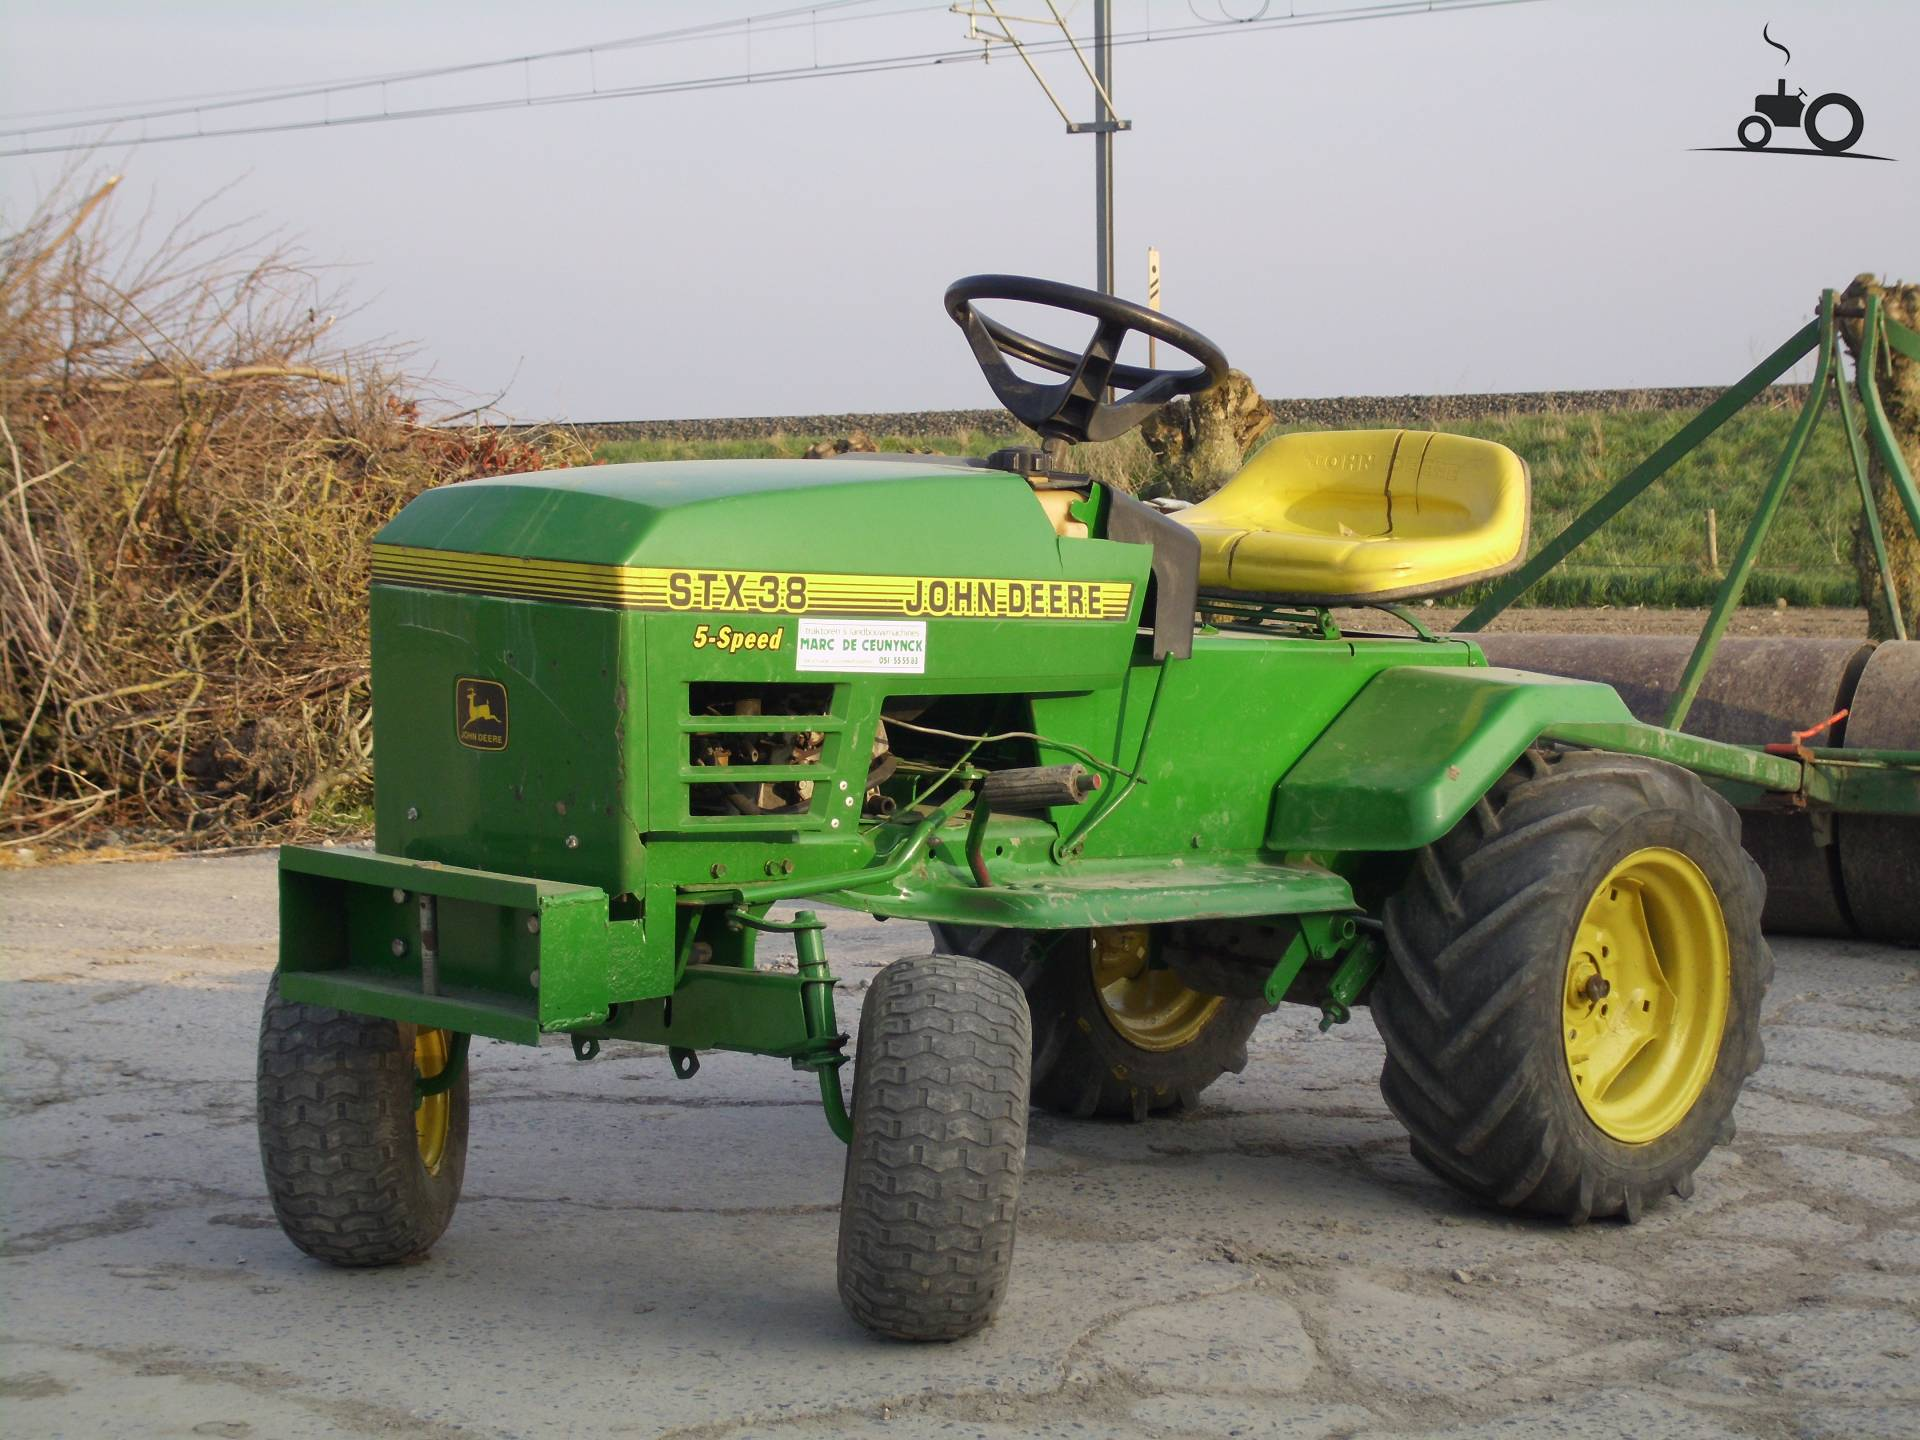 S 63 John Deere D130 Parts also Viewtopic together with 4020 Jd Wiring Diagram as well 4400 HST 3 Point Hitch Problem also Stx 38 Wiring Diagram. on jd 1070 wiring diagram